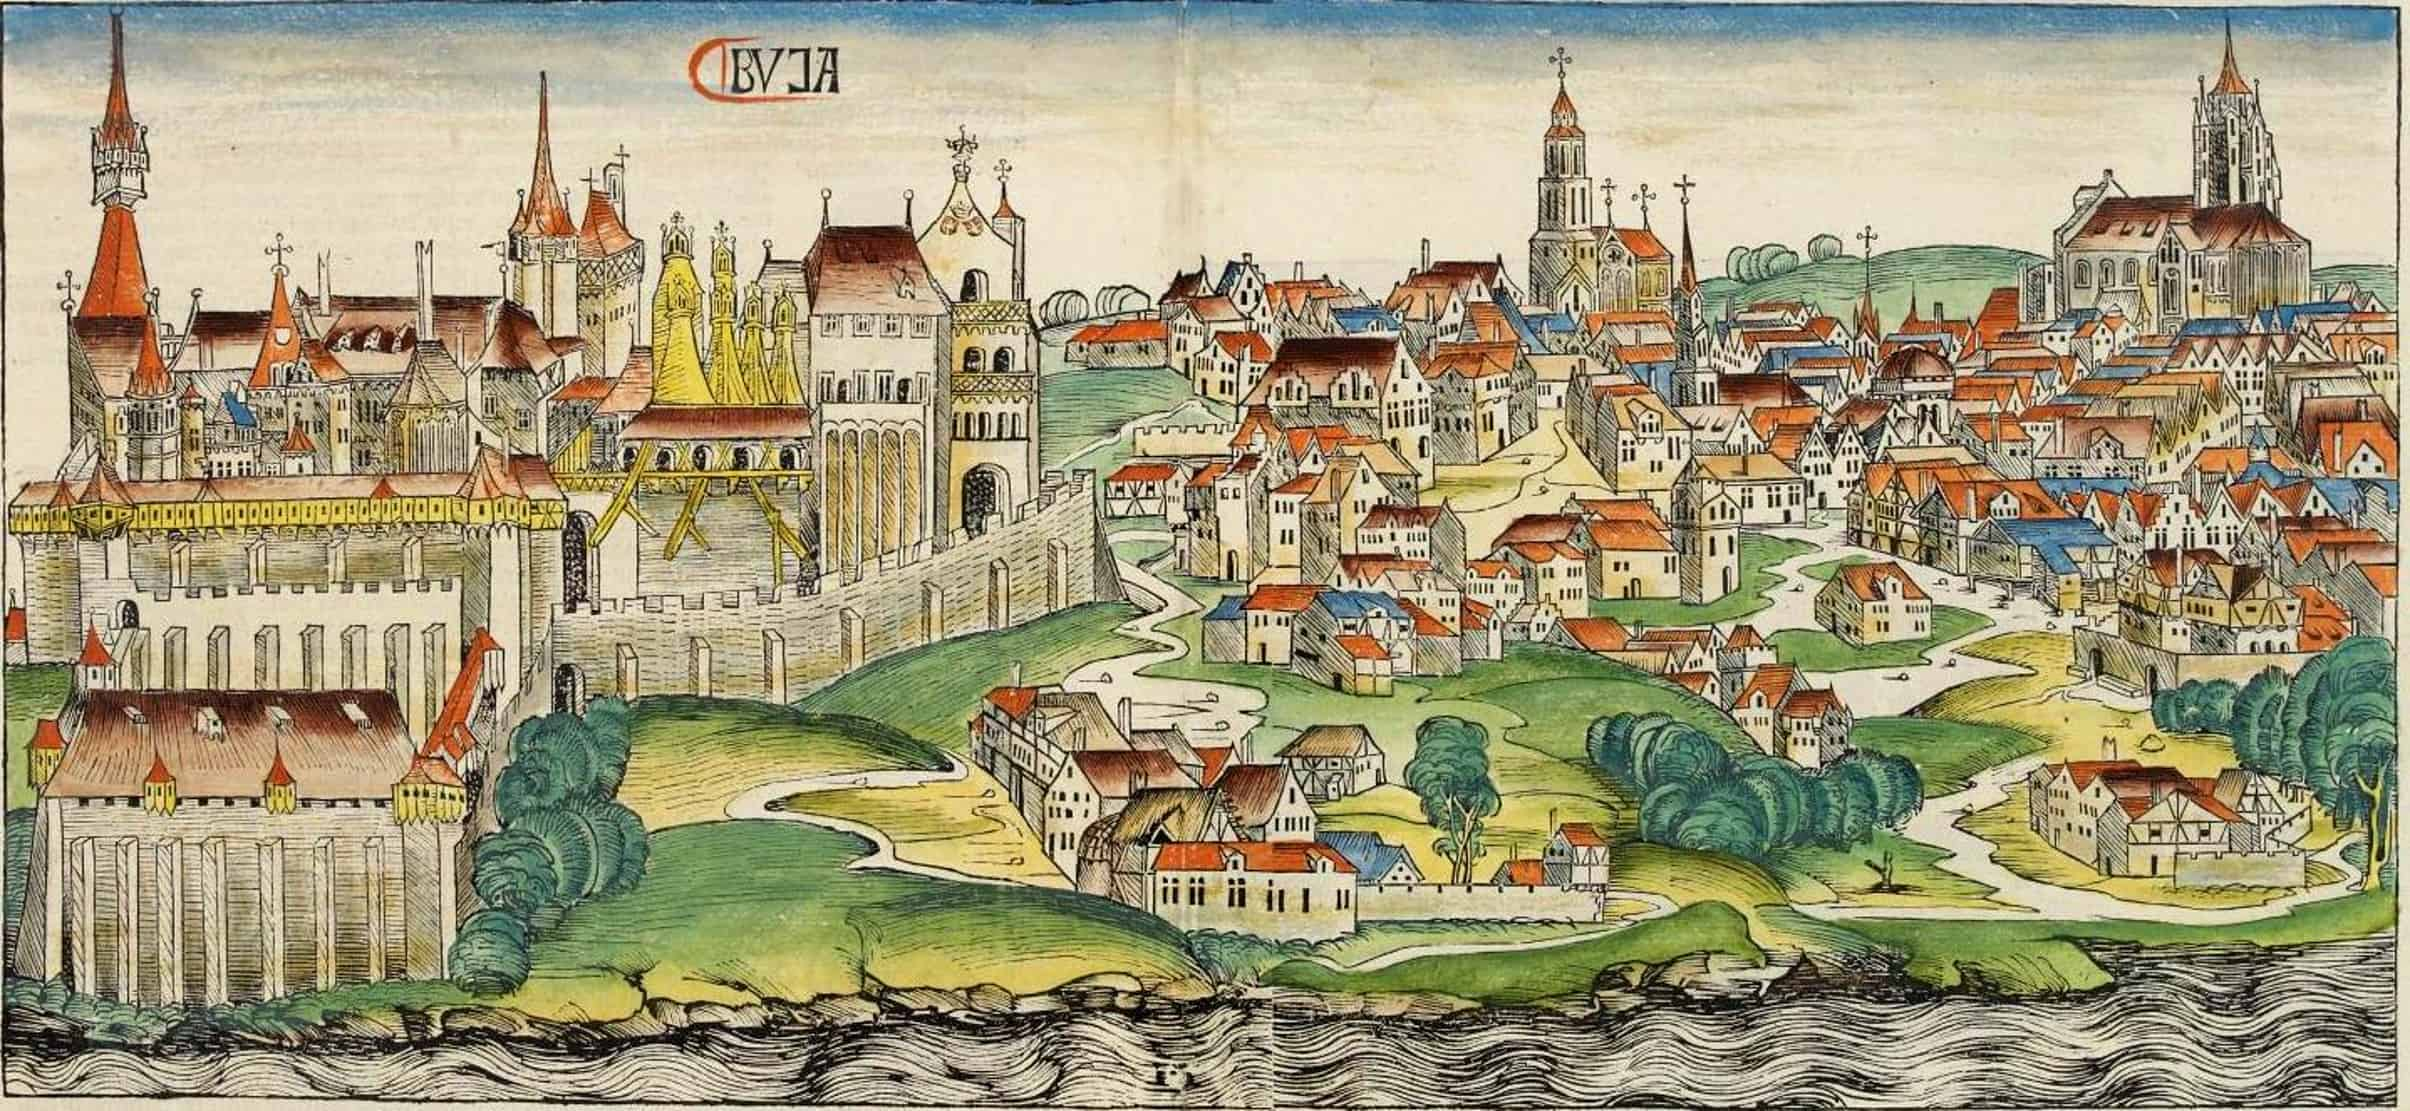 Buda during the Middle Ages